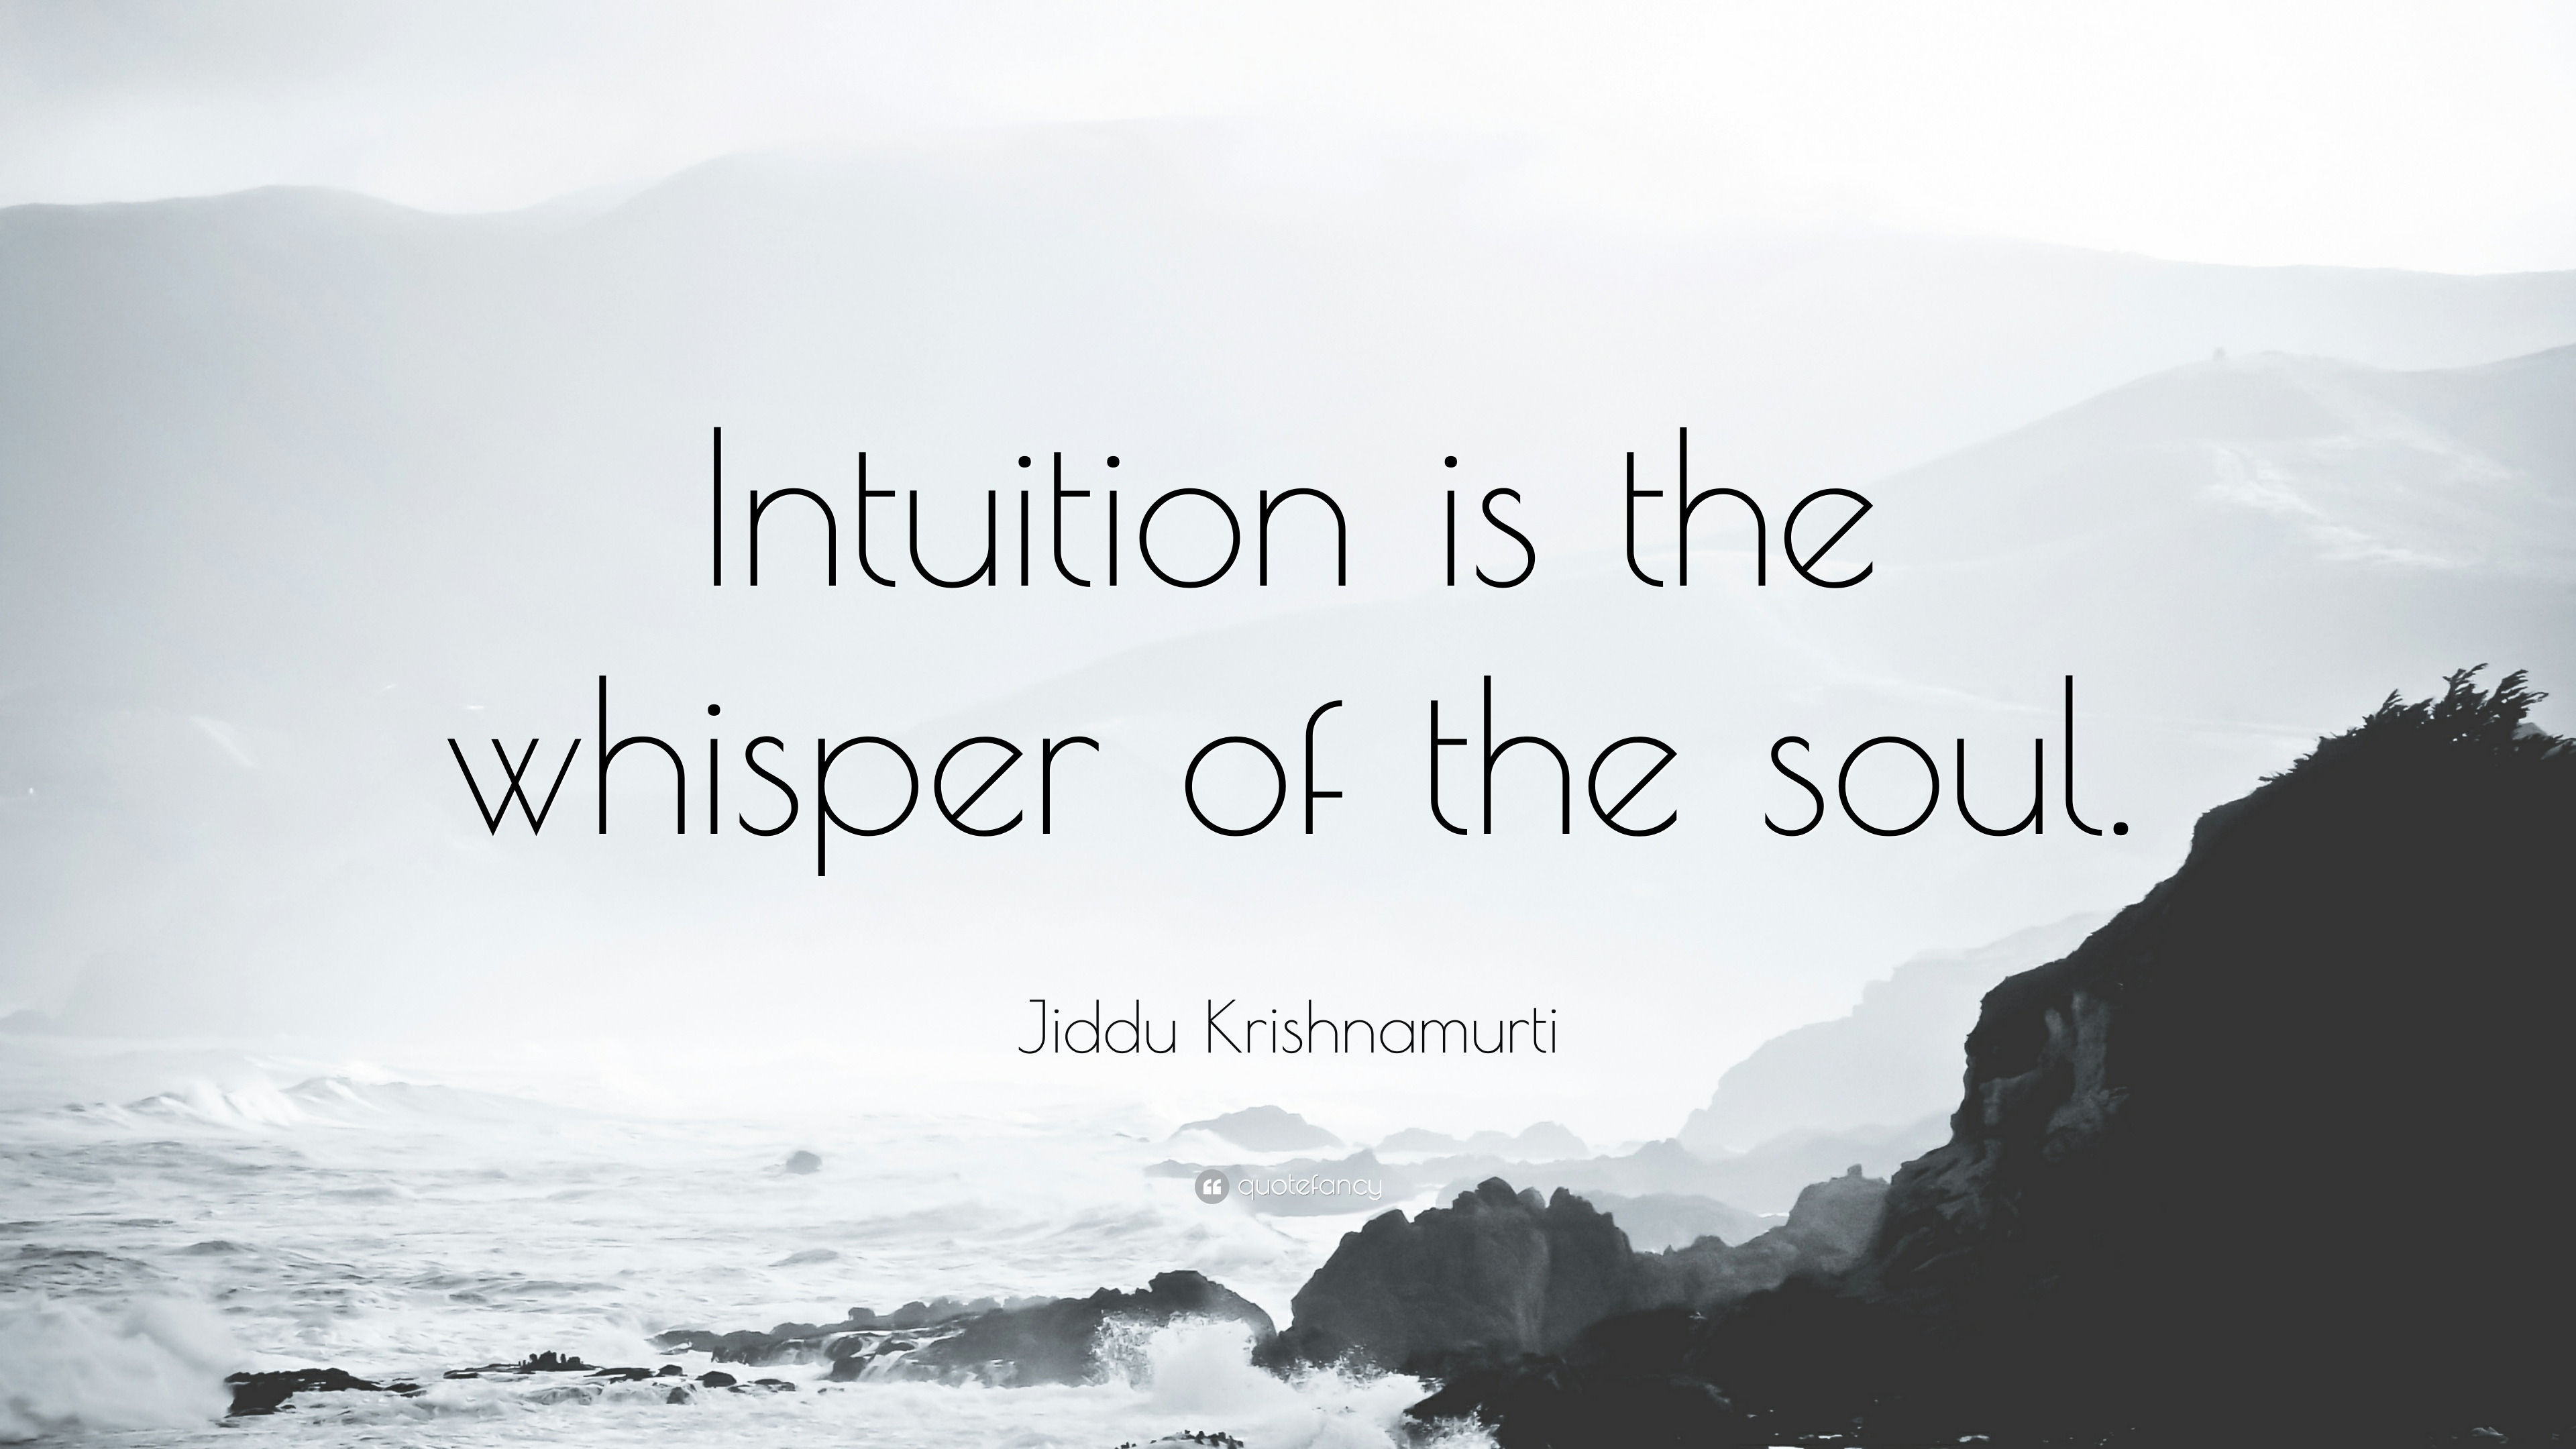 Kant Quotes Wallpaper Jiddu Krishnamurti Quote Intuition Is The Whisper Of The